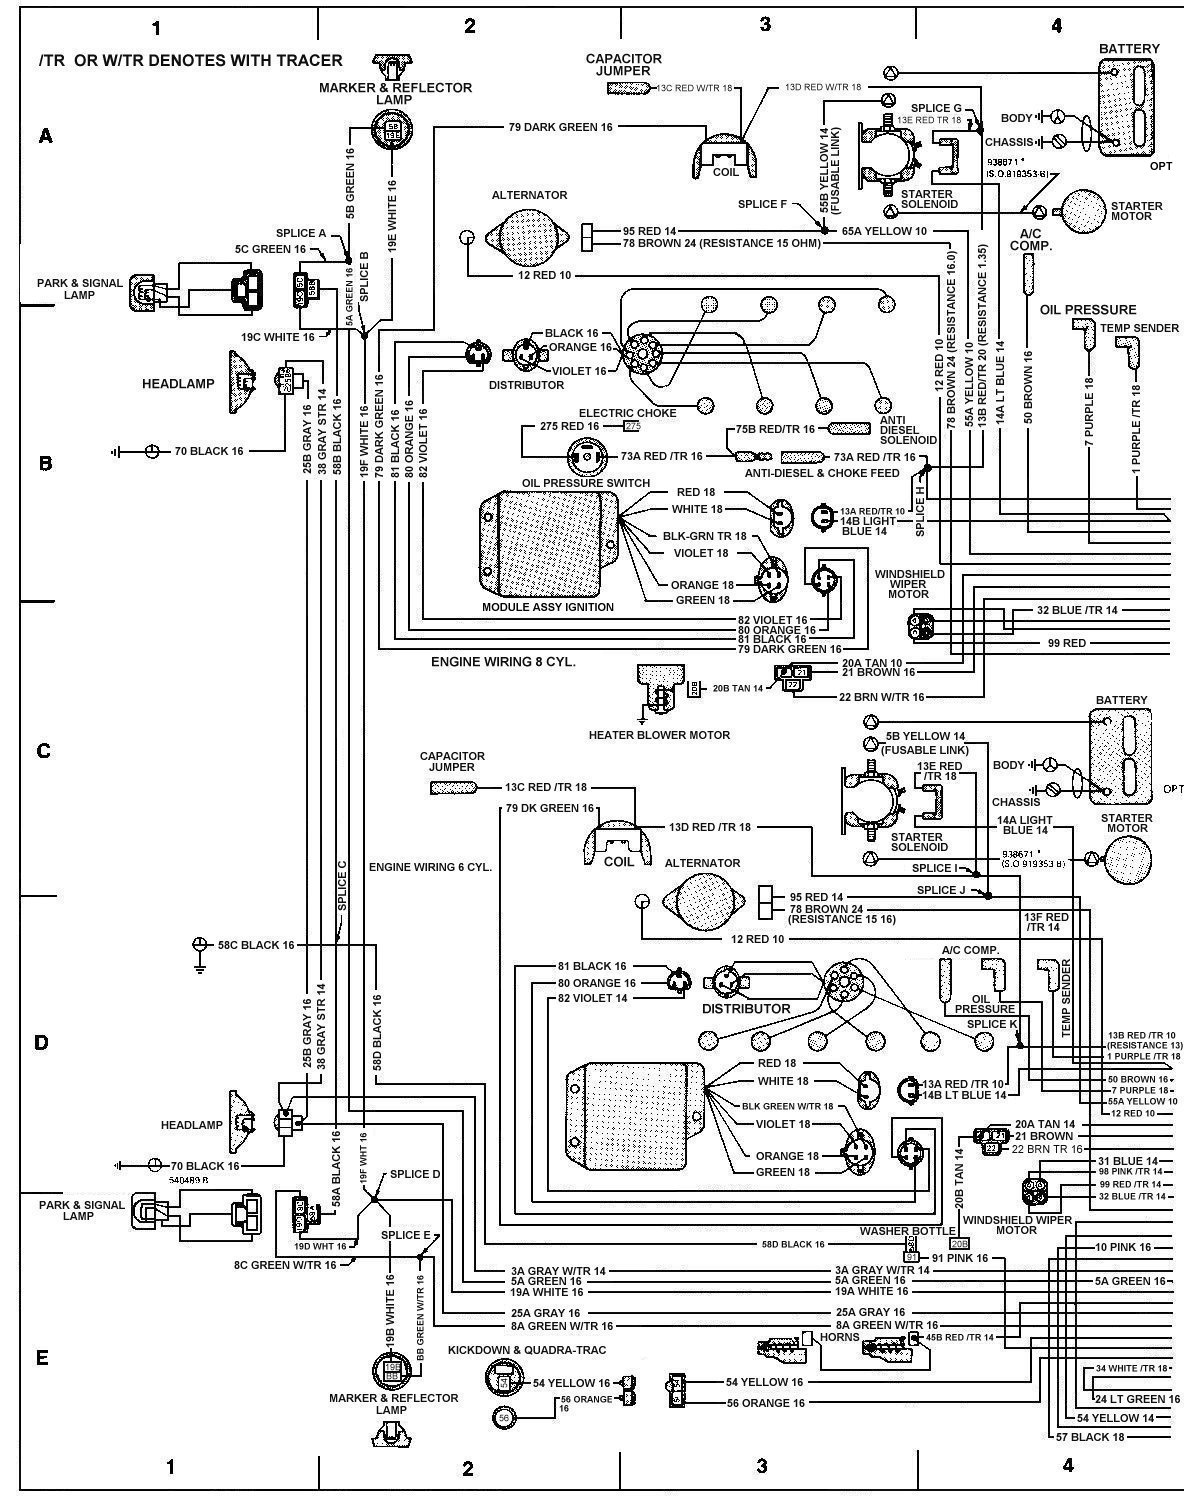 1979 full size jeep cherokee engine change - jeepforum.com jeep j10 wiring diagrams